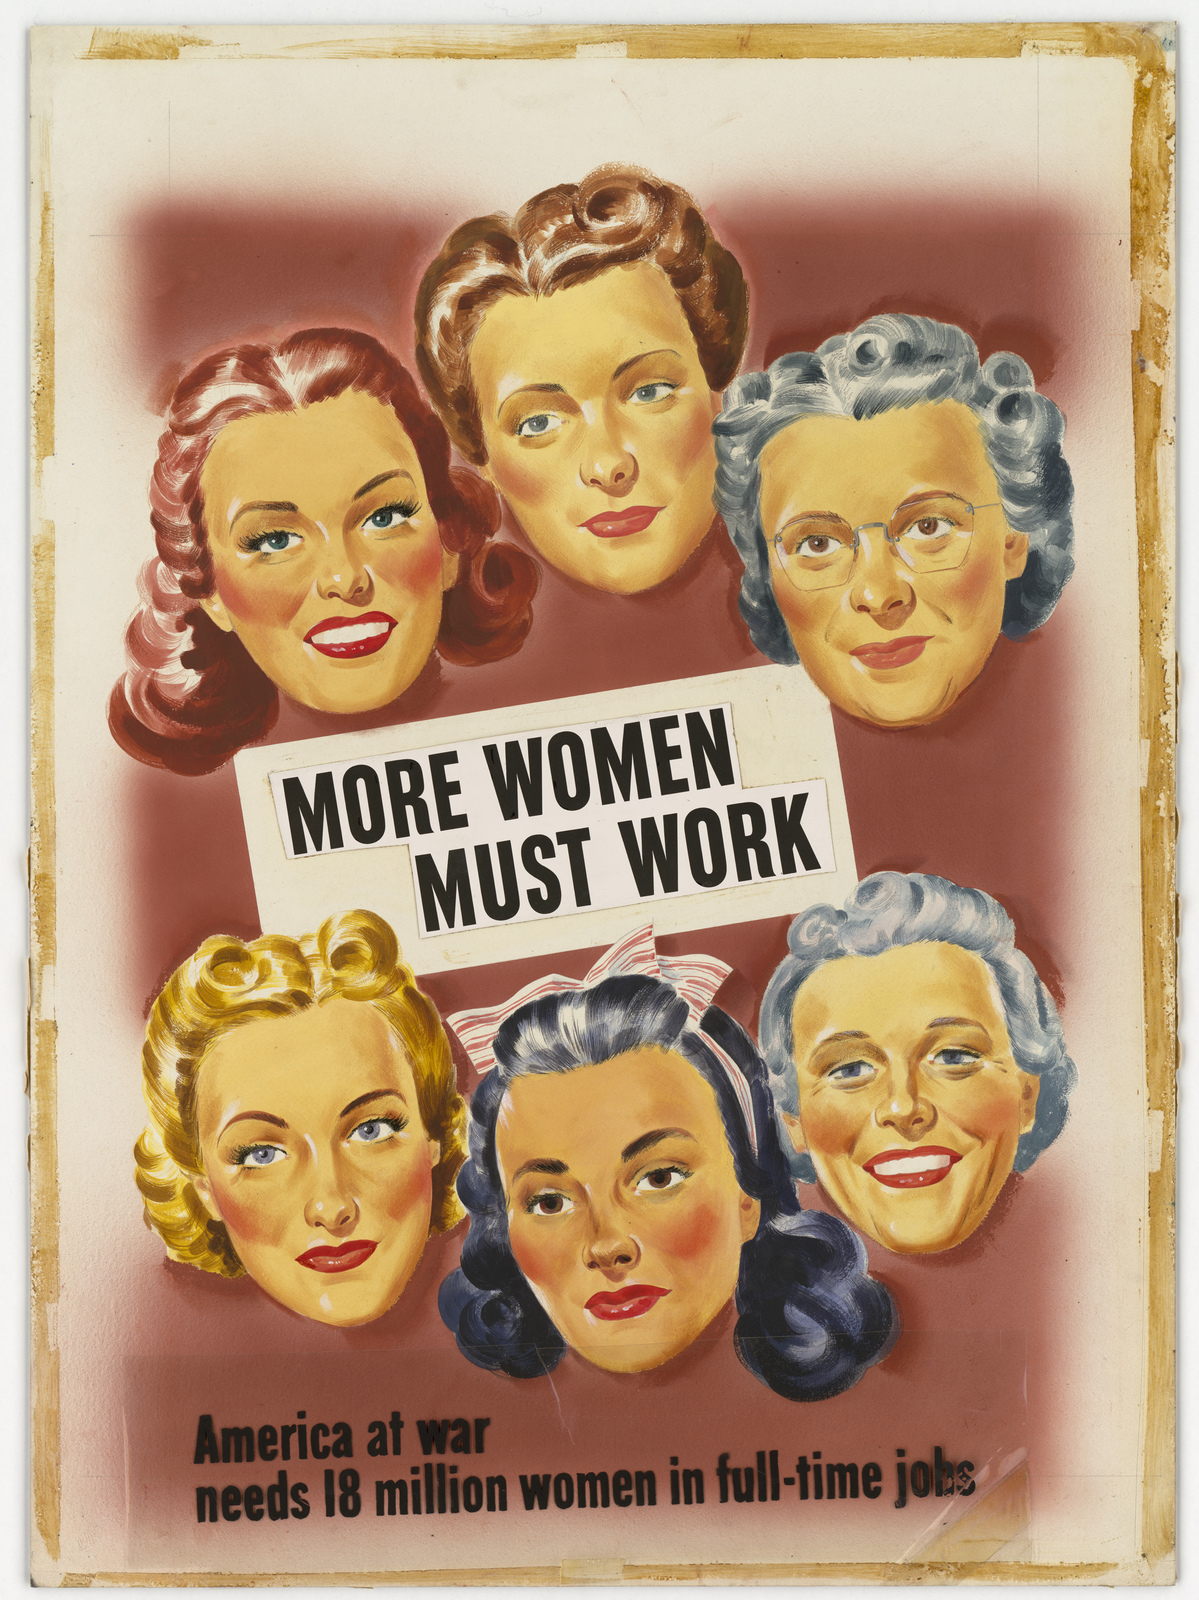 More Women Must Work  (Information on cover sheet: America at war needs 18 million women in full-time jobs.)